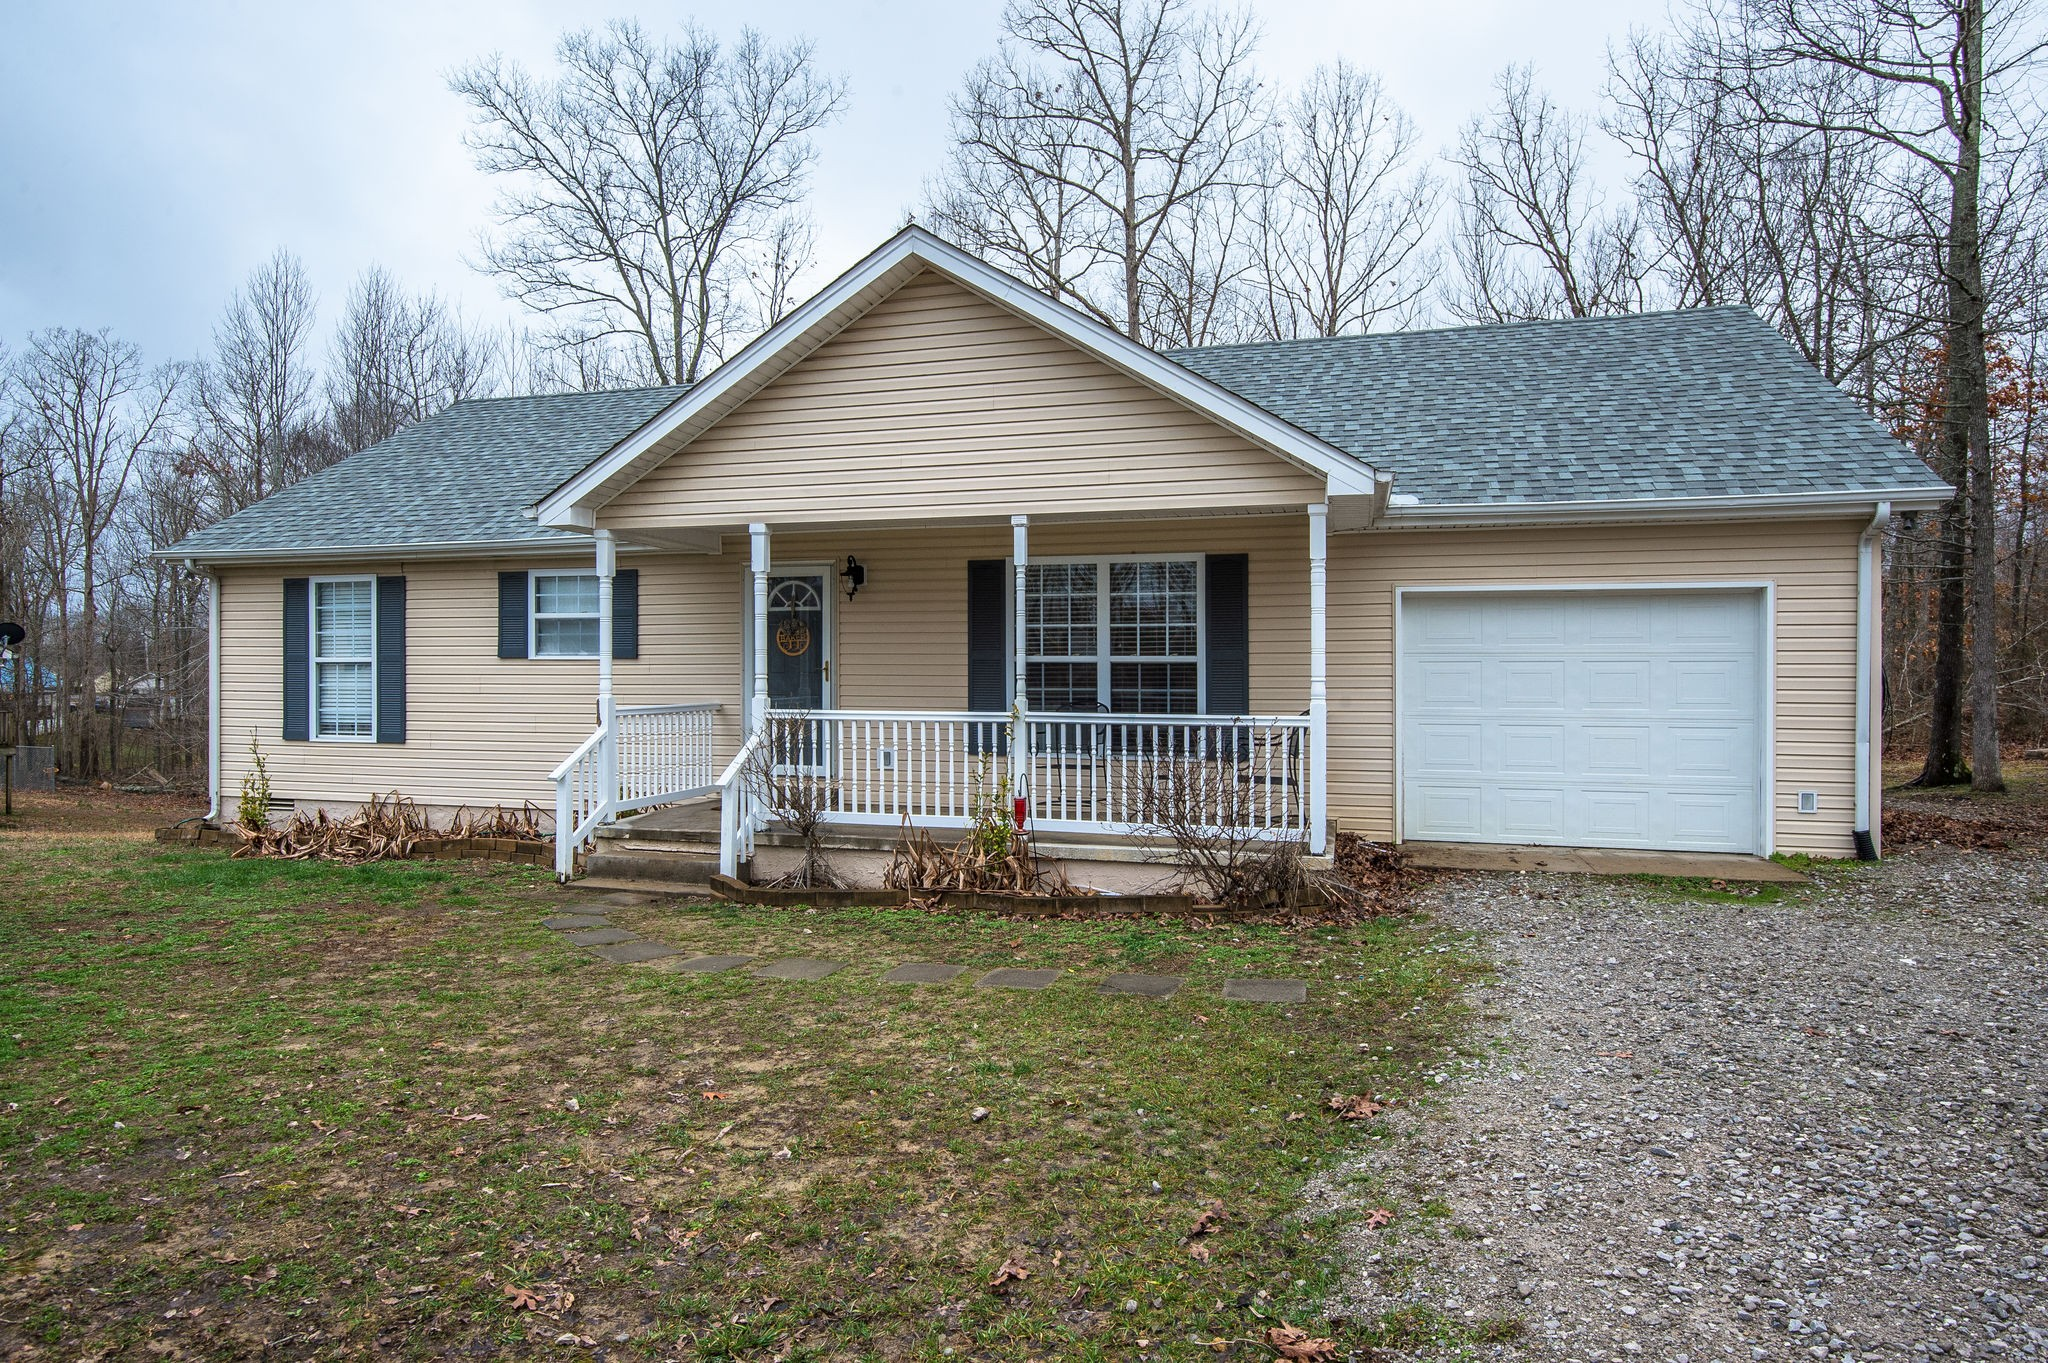 425 Station Dr, Waverly, TN 37185 - Waverly, TN real estate listing